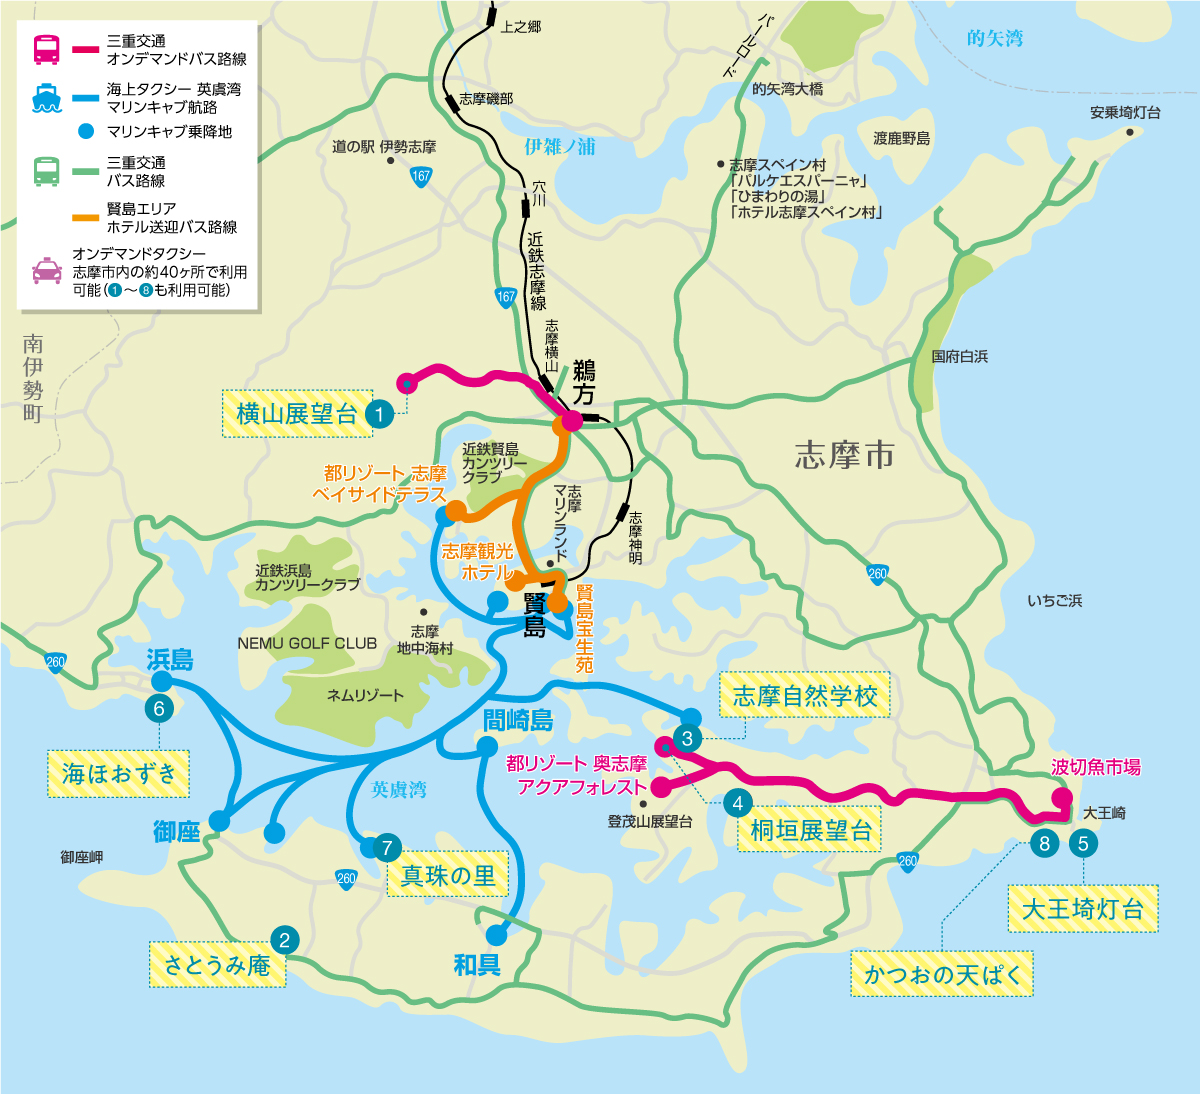 Shima's primary tourist spots and route MAP